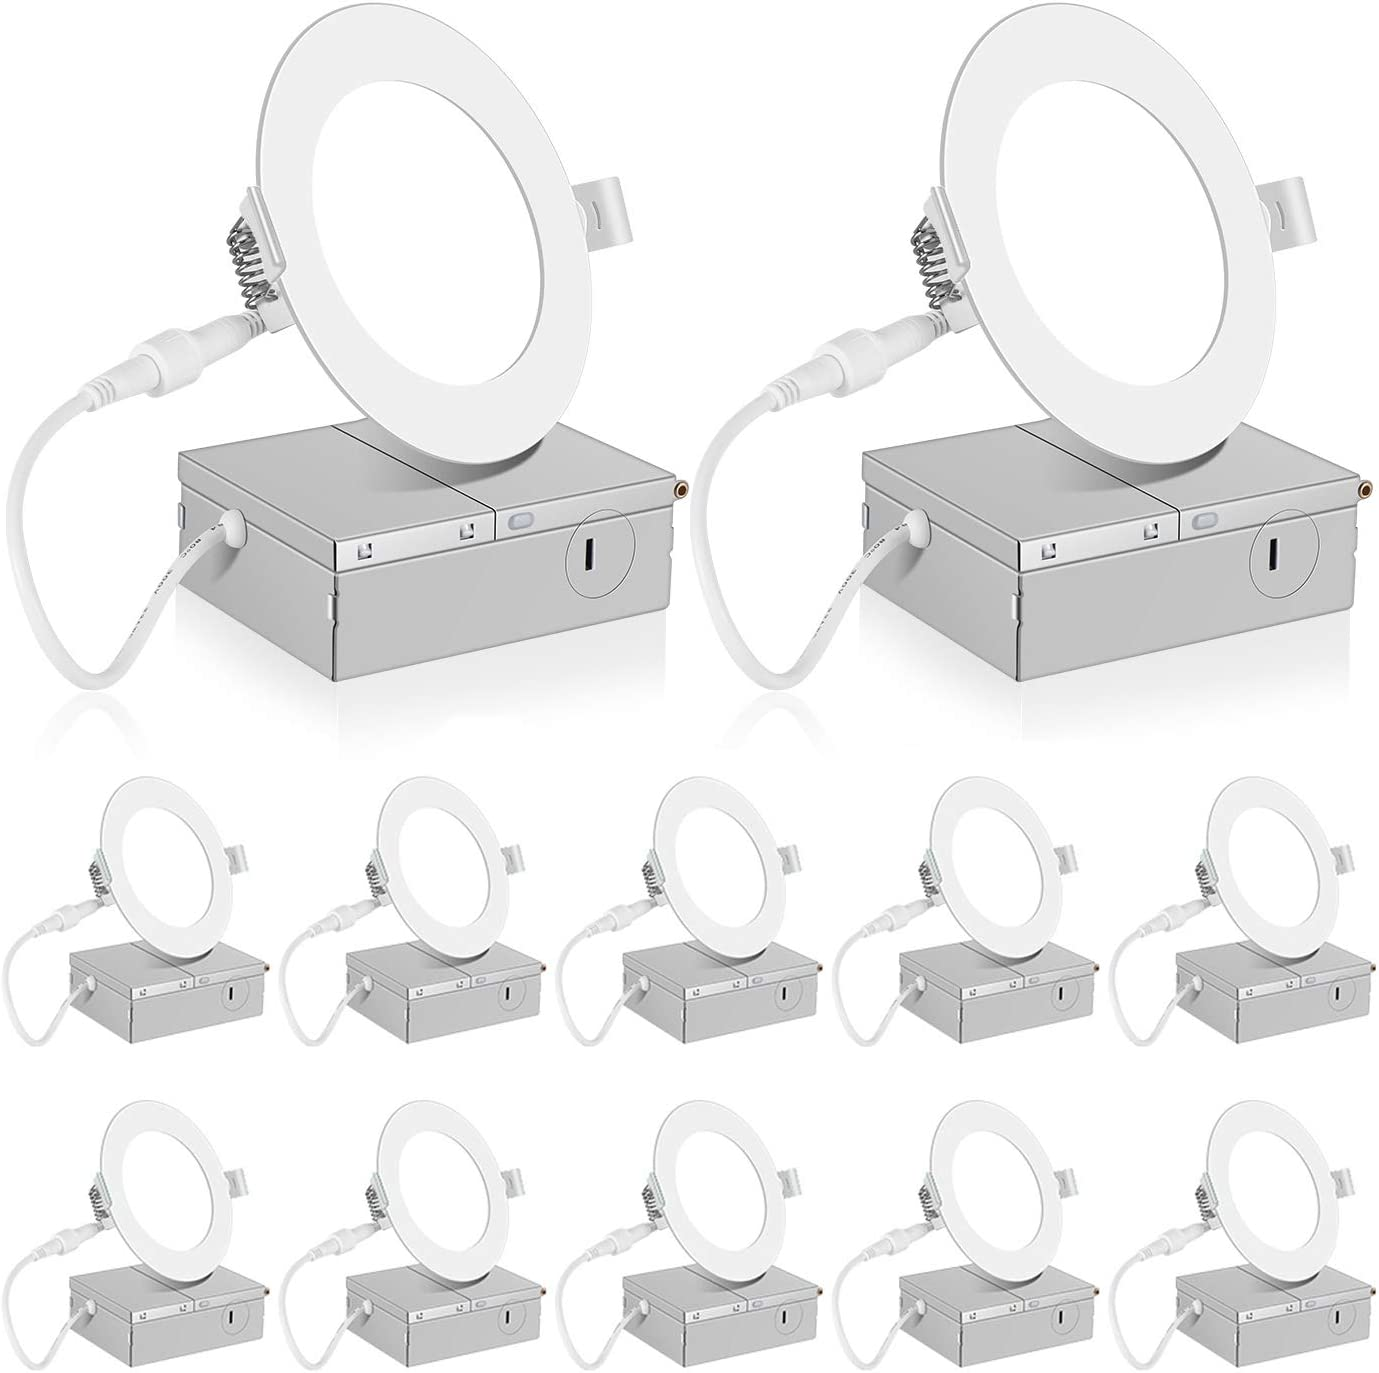 Dimmable IC-Rated Slim Pot Light with Junction Box 9W 750LM Super Bright INCARLED 12Pack Upgraded 4inch LED Recessed Ceiling Lighting 3000K, 4000K, 5000K Color Changeable 3CCT